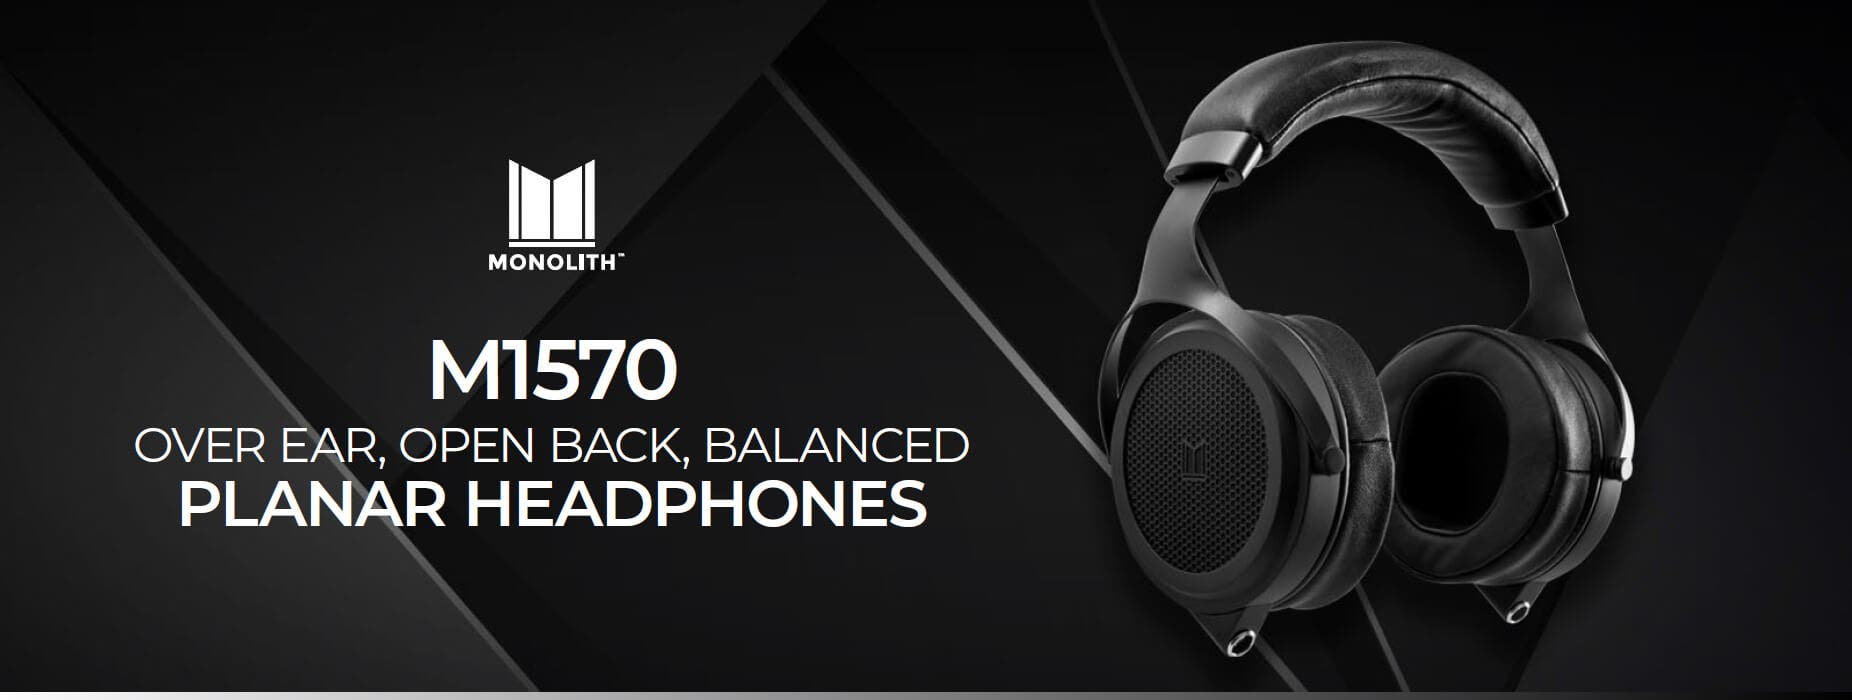 M1570 Headphones